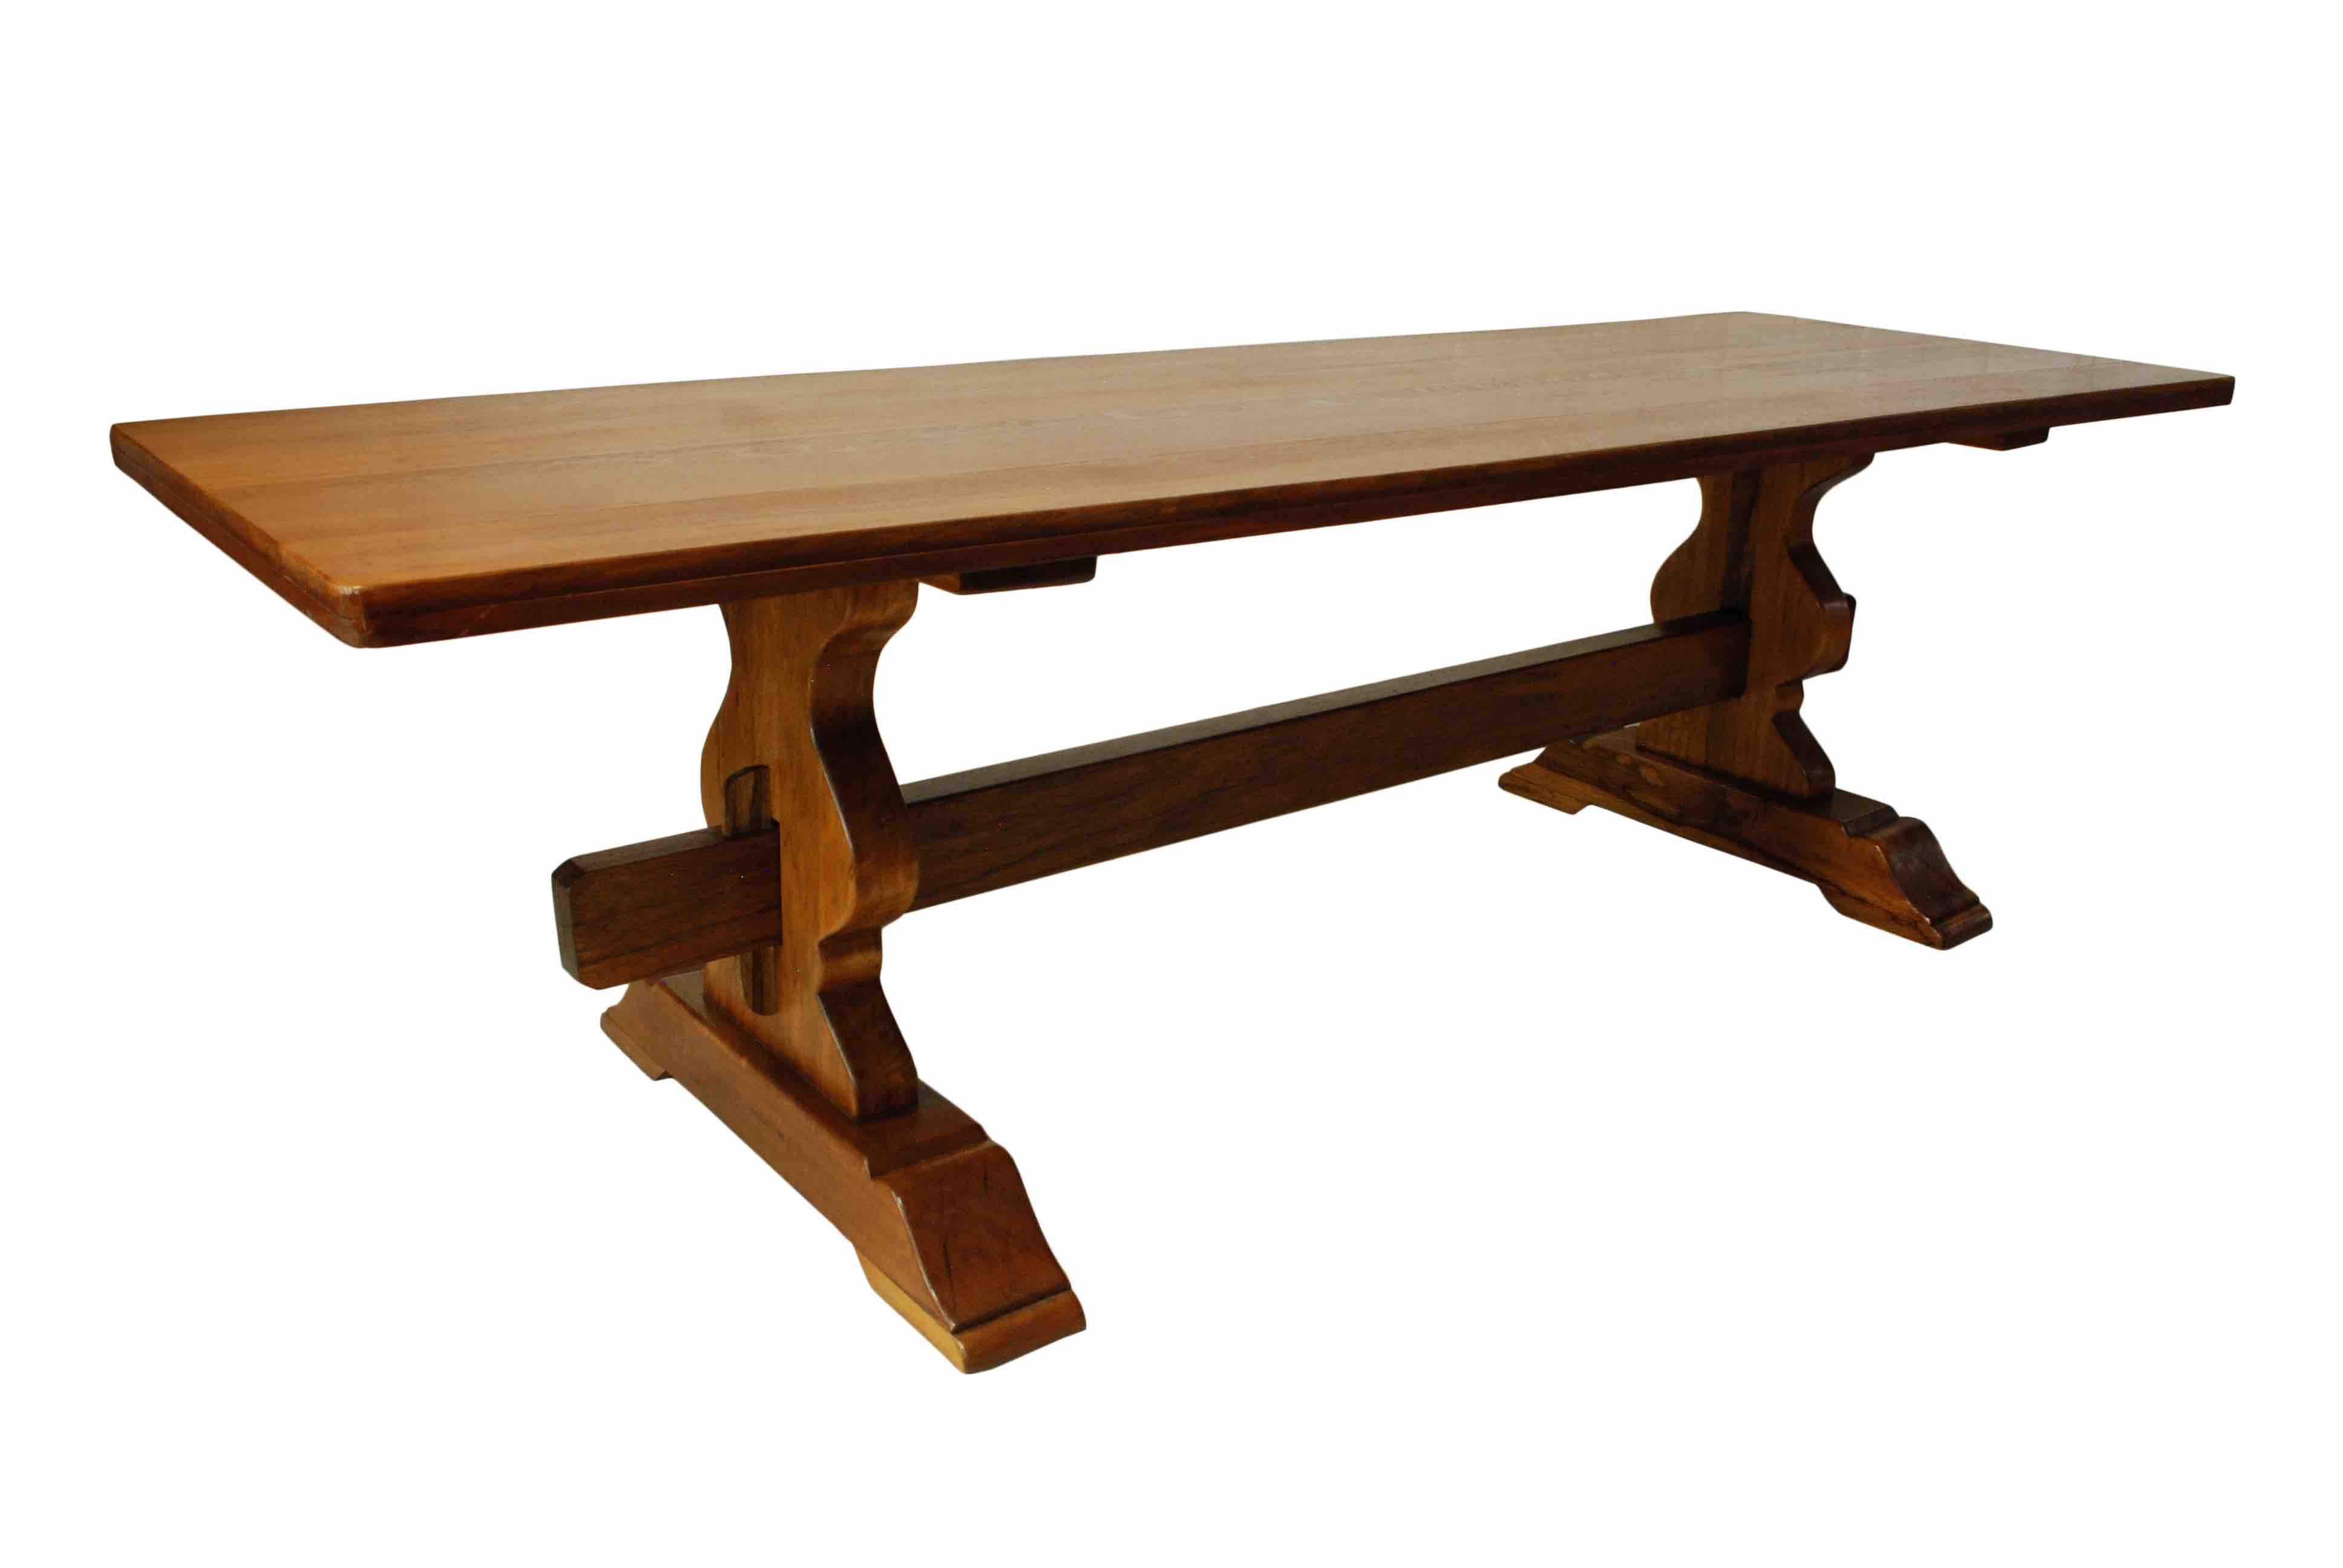 French provincial dining table retro dining table aslett for 10 seater dining table perth